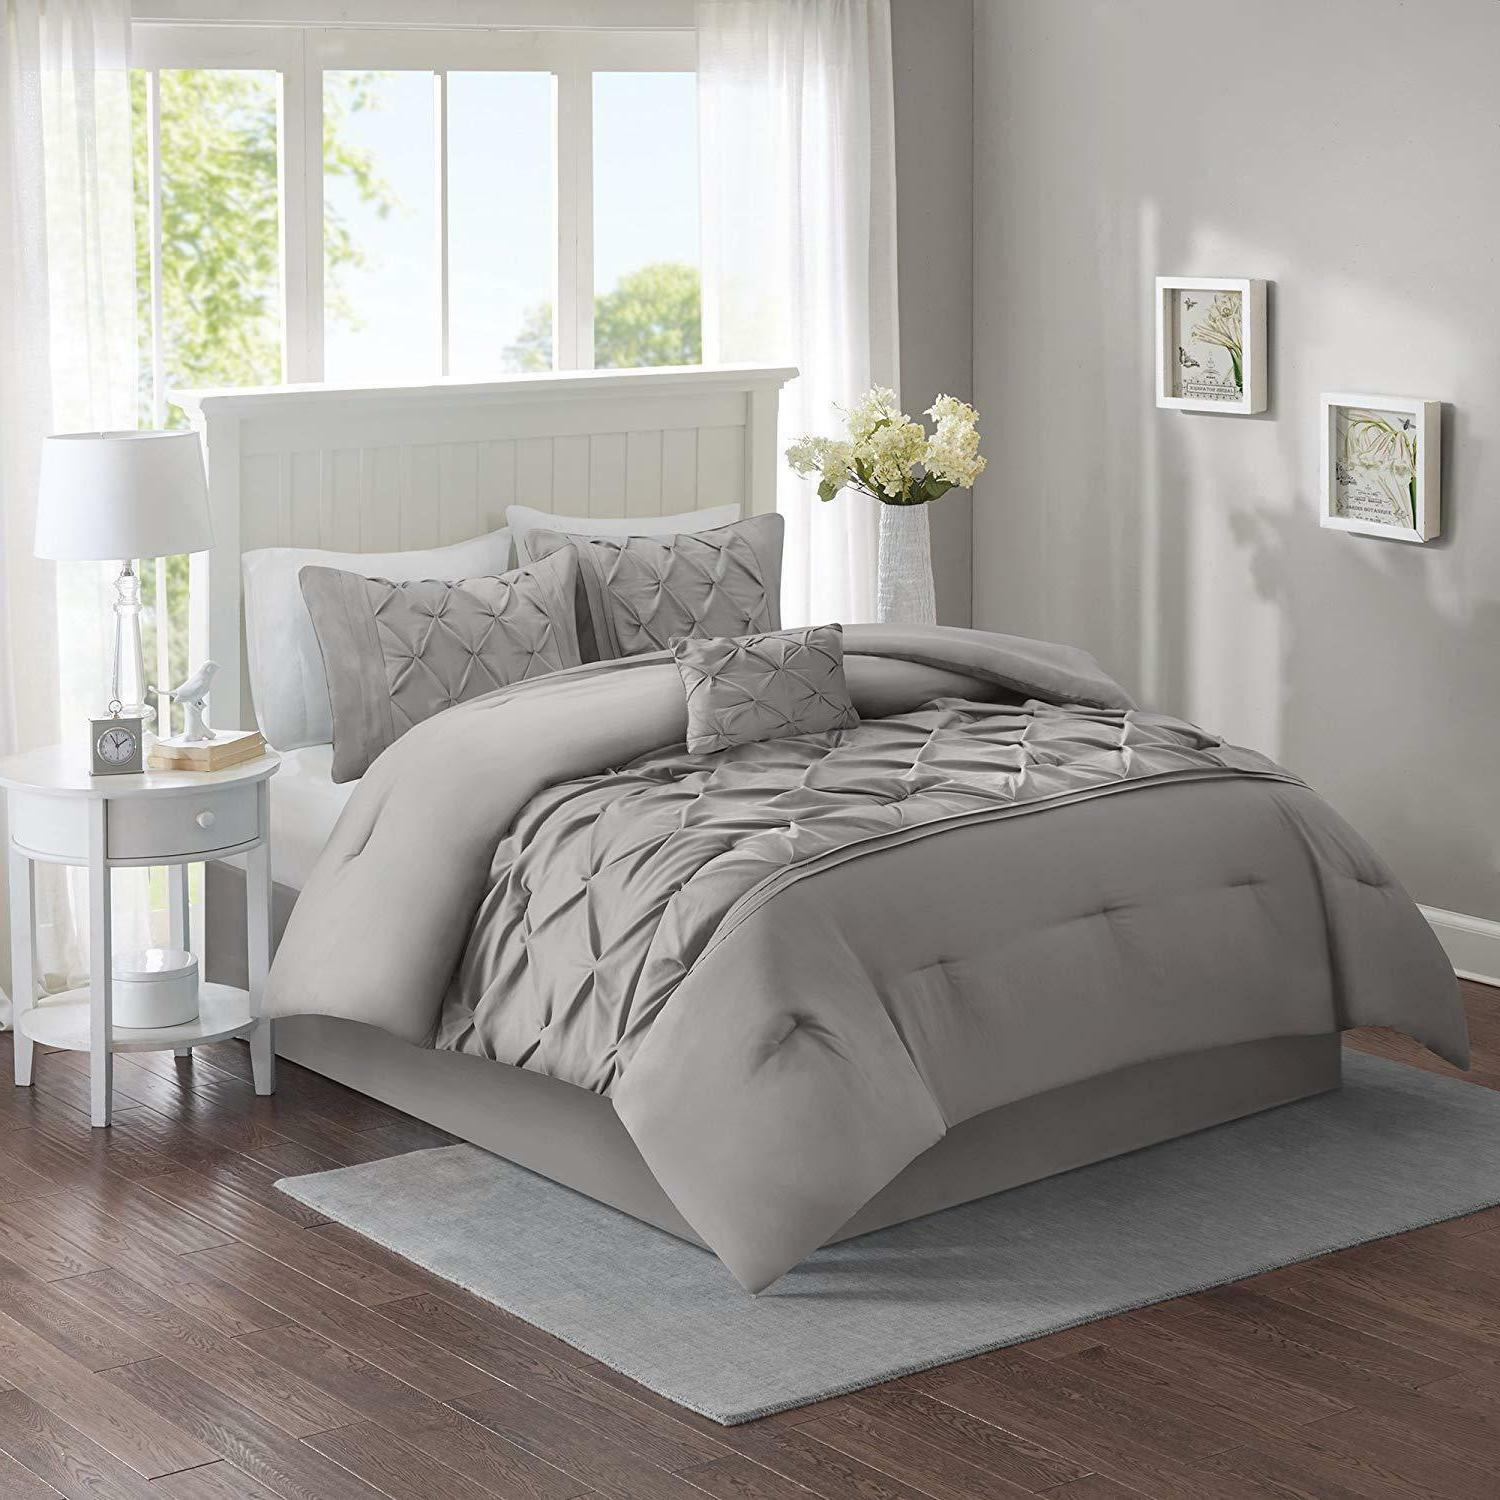 Comforter Set Full Queen Bed In Tufted Bedding 5